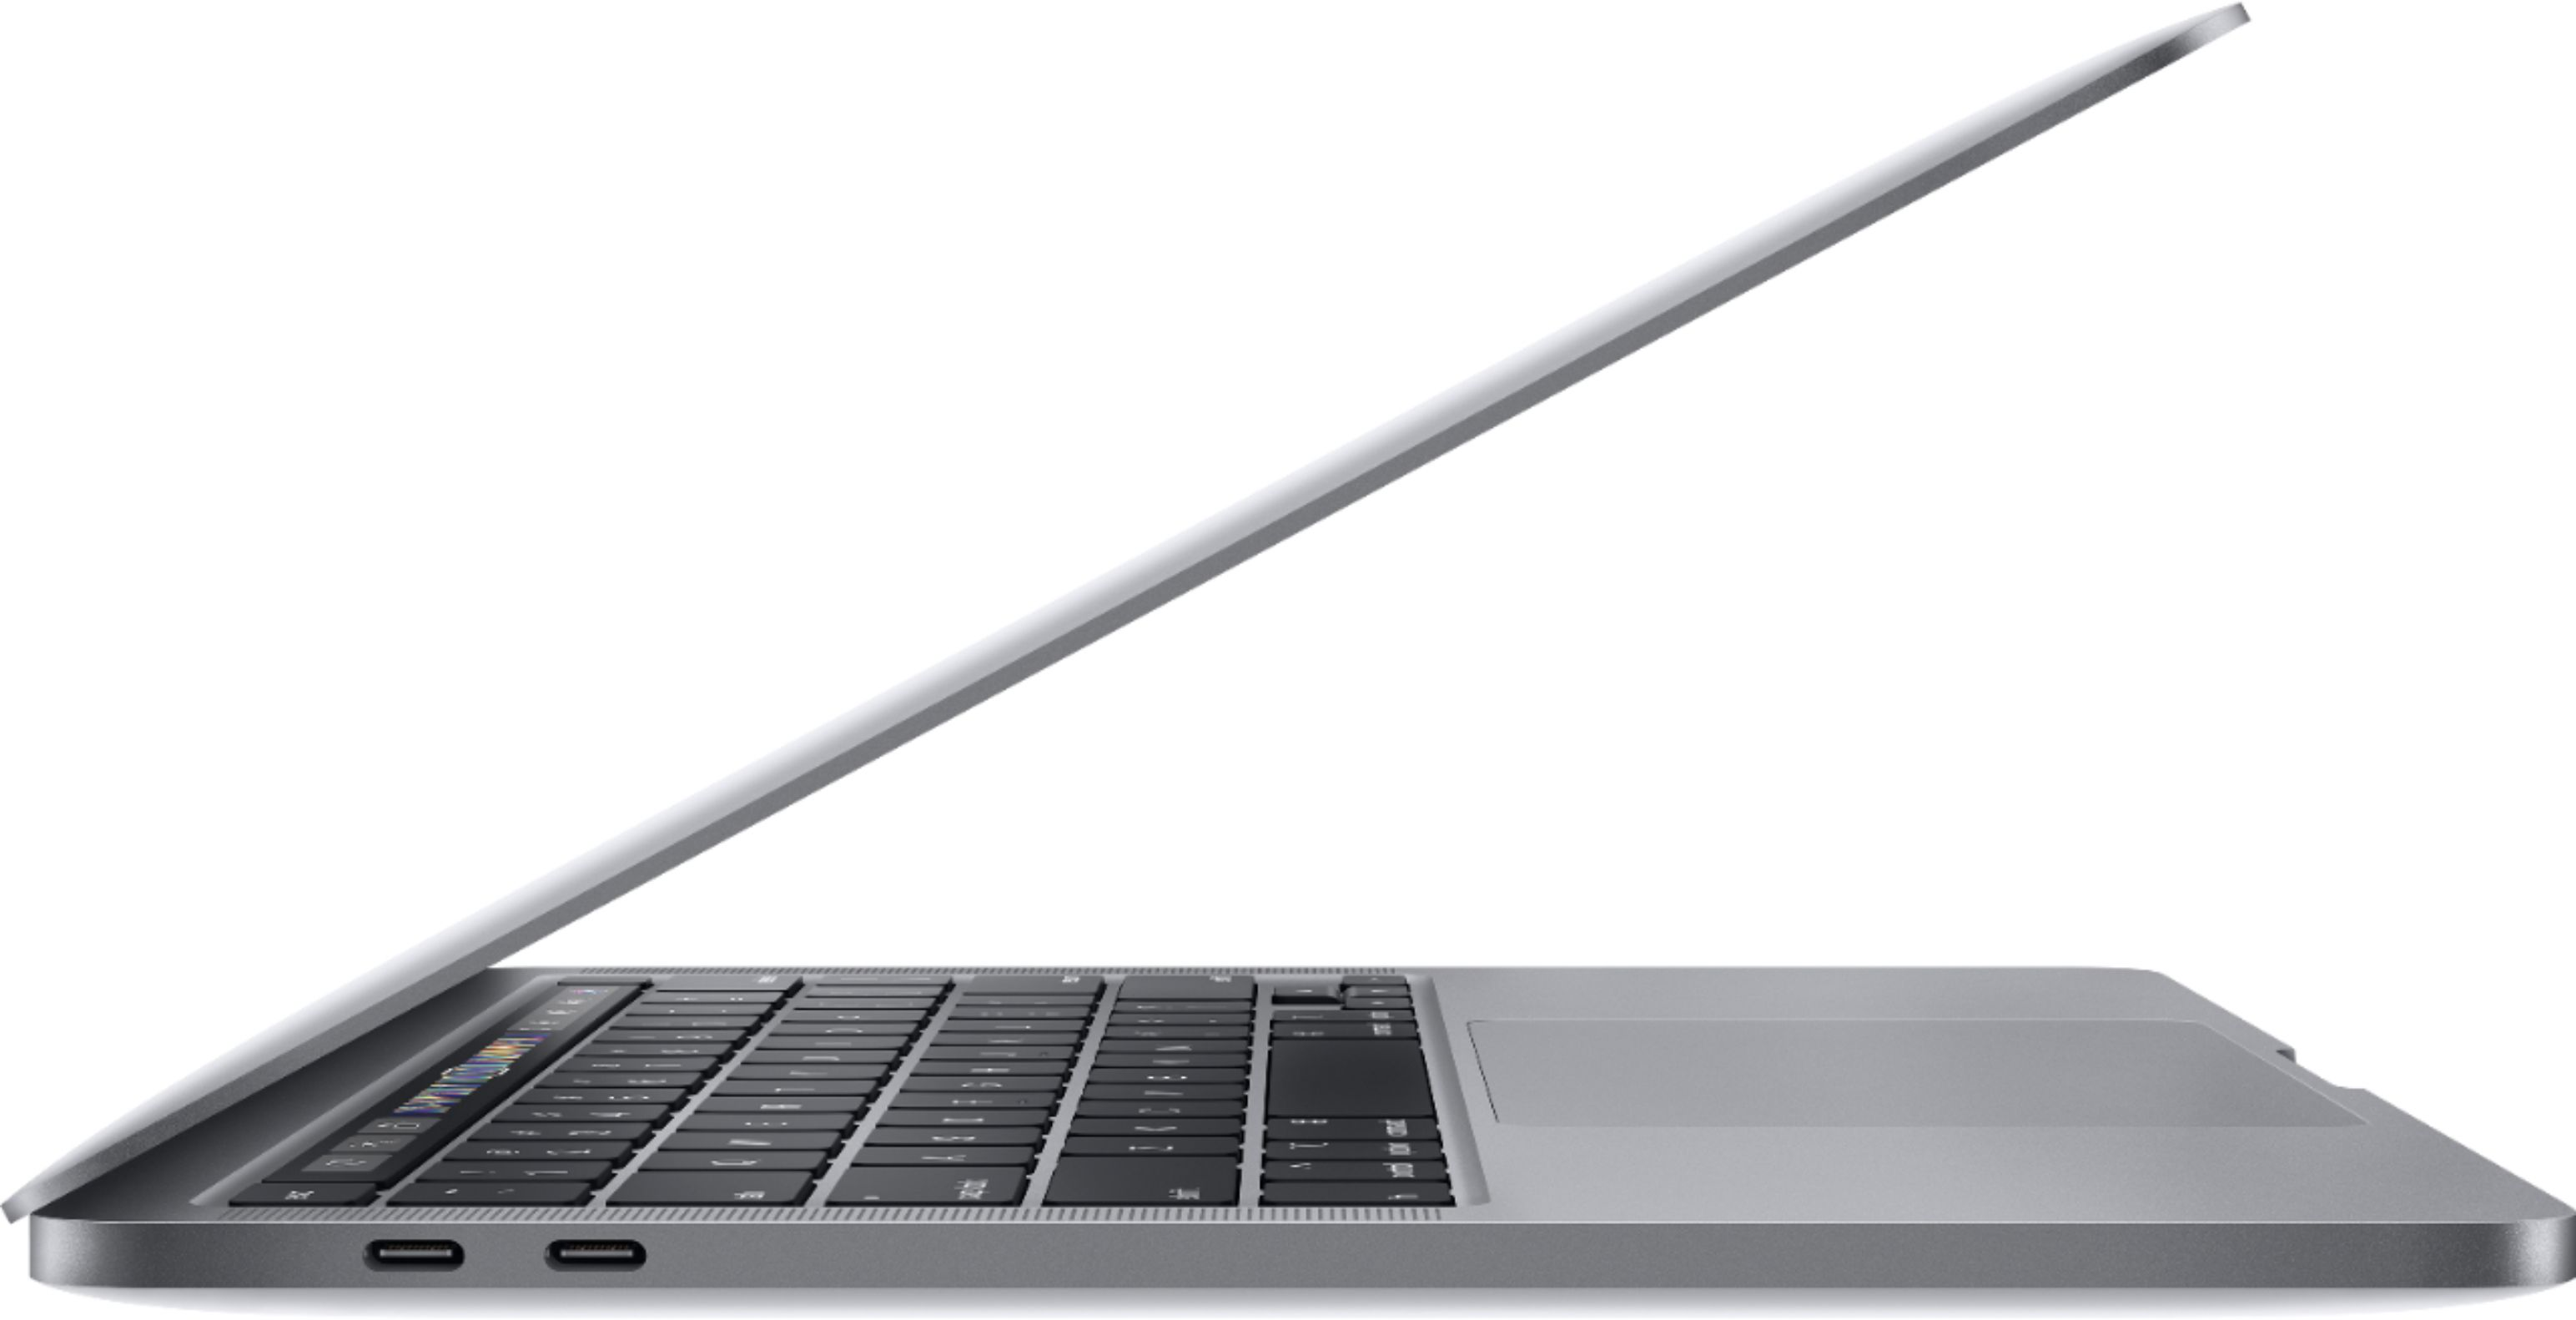 """Alt View Zoom 11. Apple - MacBook Pro - 13"""" Display with Touch Bar - Intel Core i5 - 8GB Memory - 512GB SSD - Space Gray."""